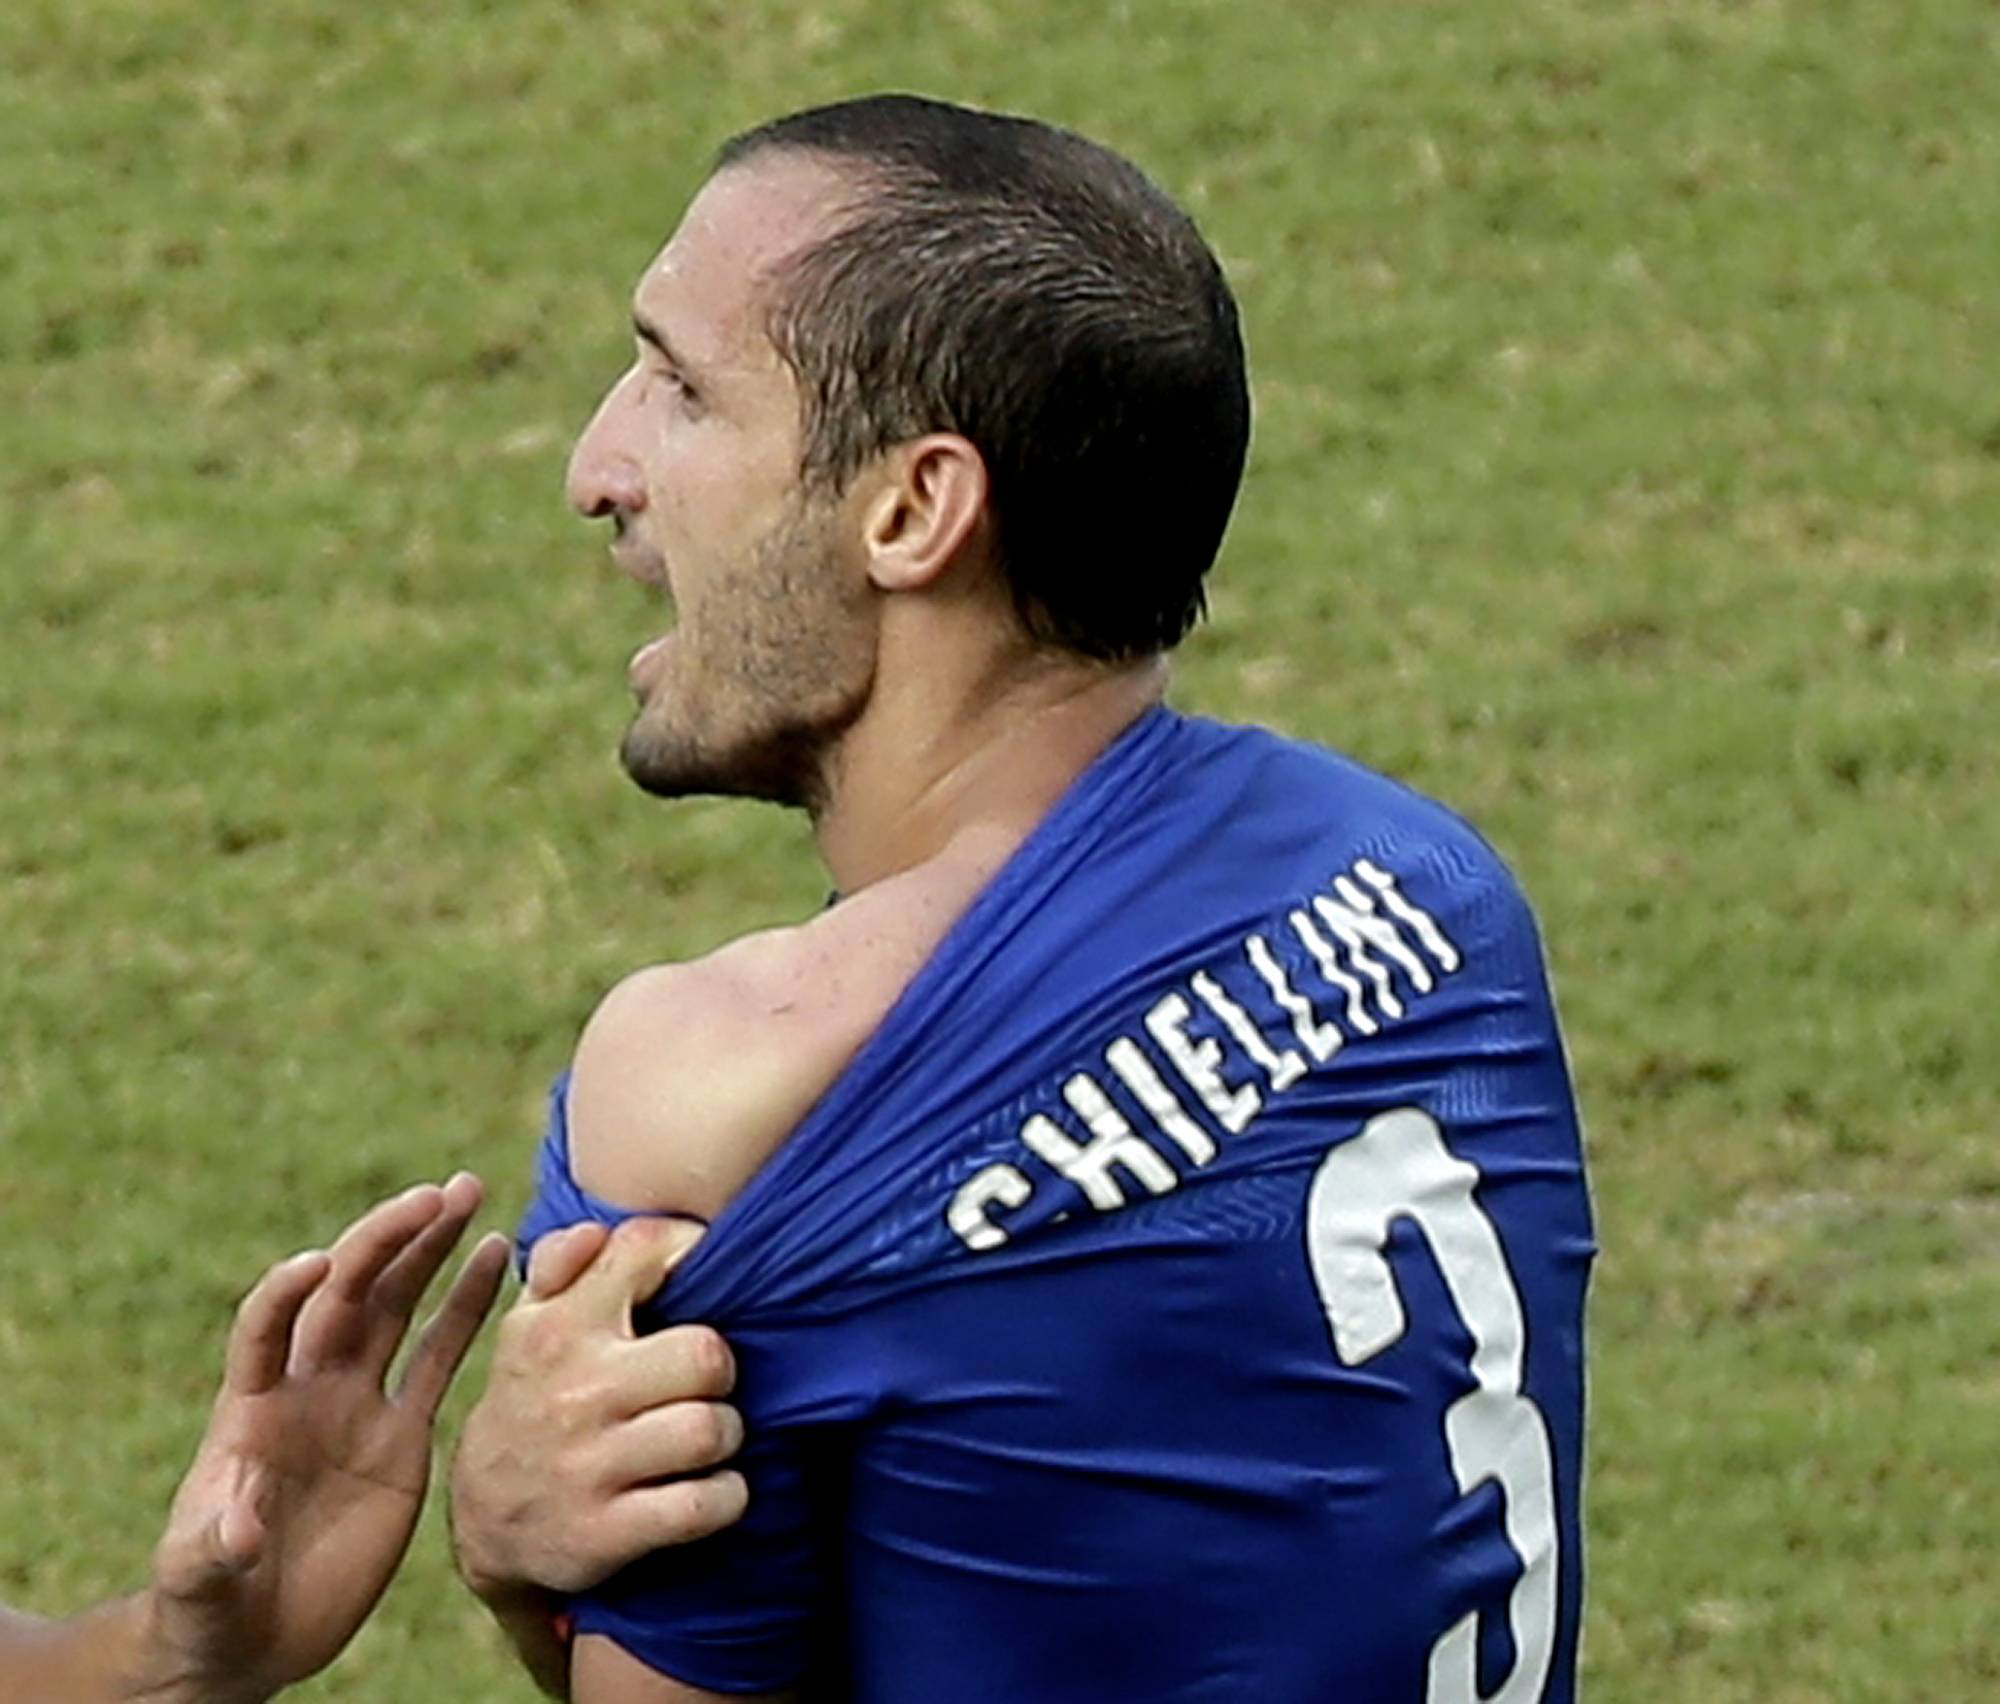 Italy's Giorgio Chiellini displays his shoulder showing apparent teeth marks after colliding with Uruguay's Luis Suarez Tuesday during a Group D World Cup match at the Arena das Dunas in Natal, Brazil.